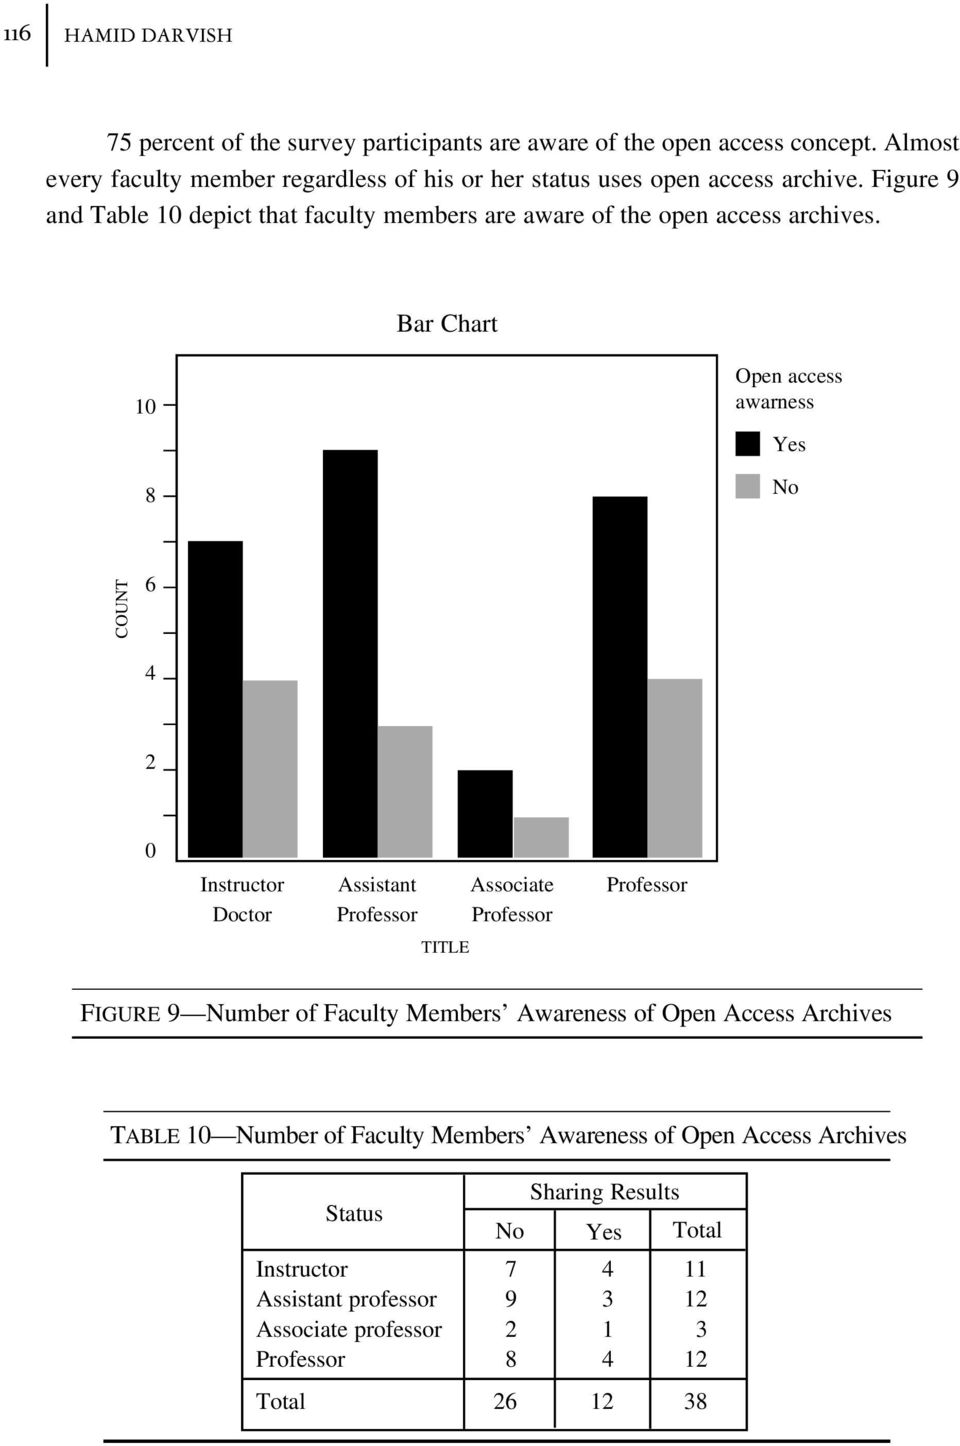 Figure 9 and Table depict that faculty members are aware of the open access archives.